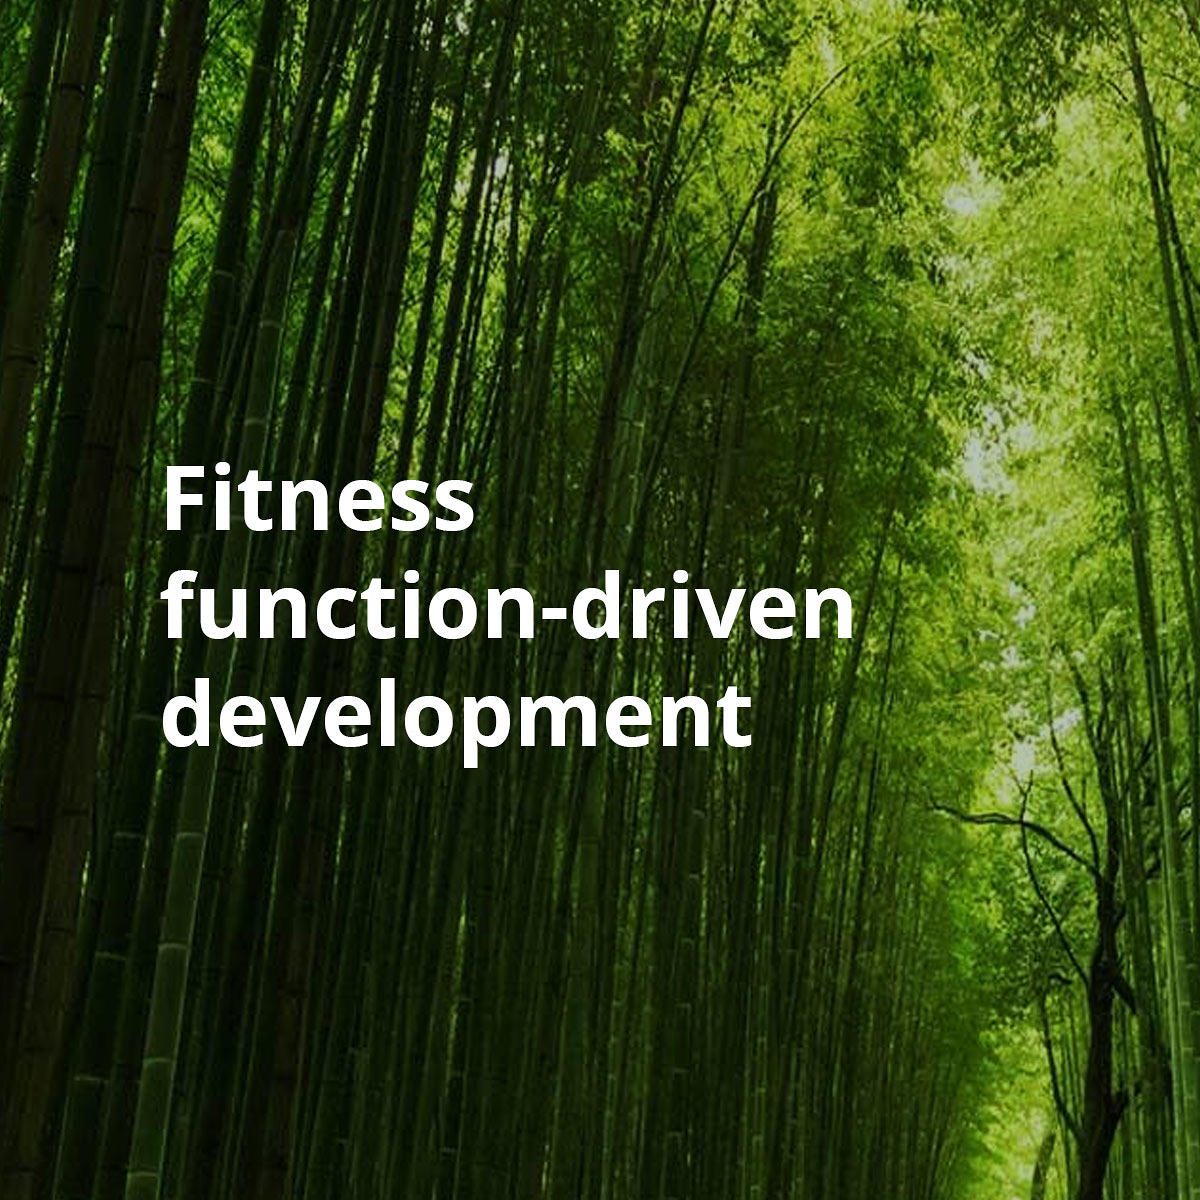 Fitness function-driven development